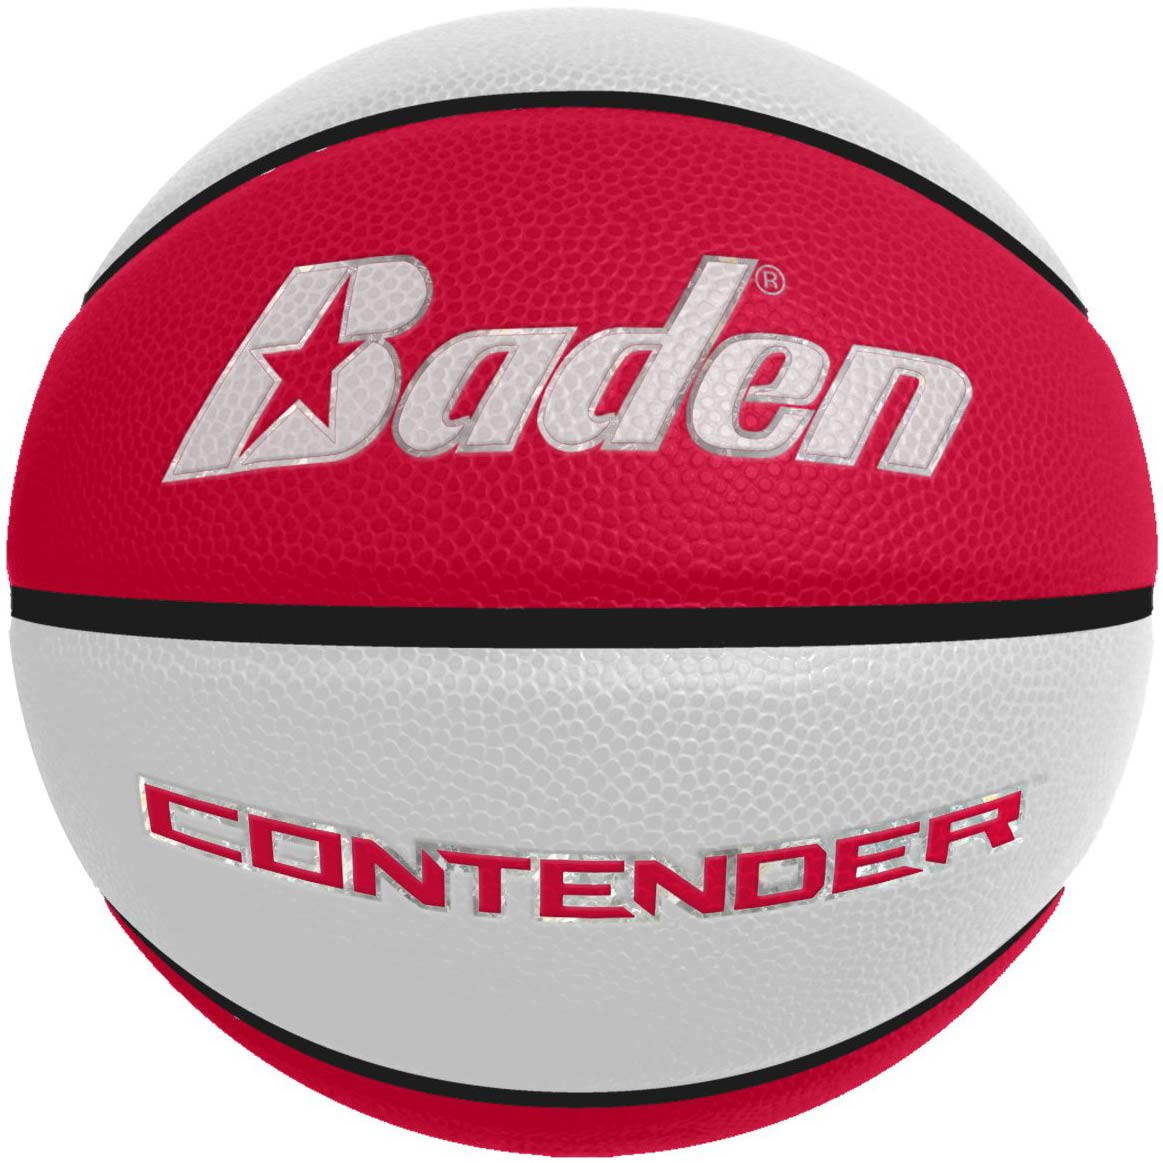 Laser Engraved - Red/White Men's Official Size Contender Performance Composite Basketball